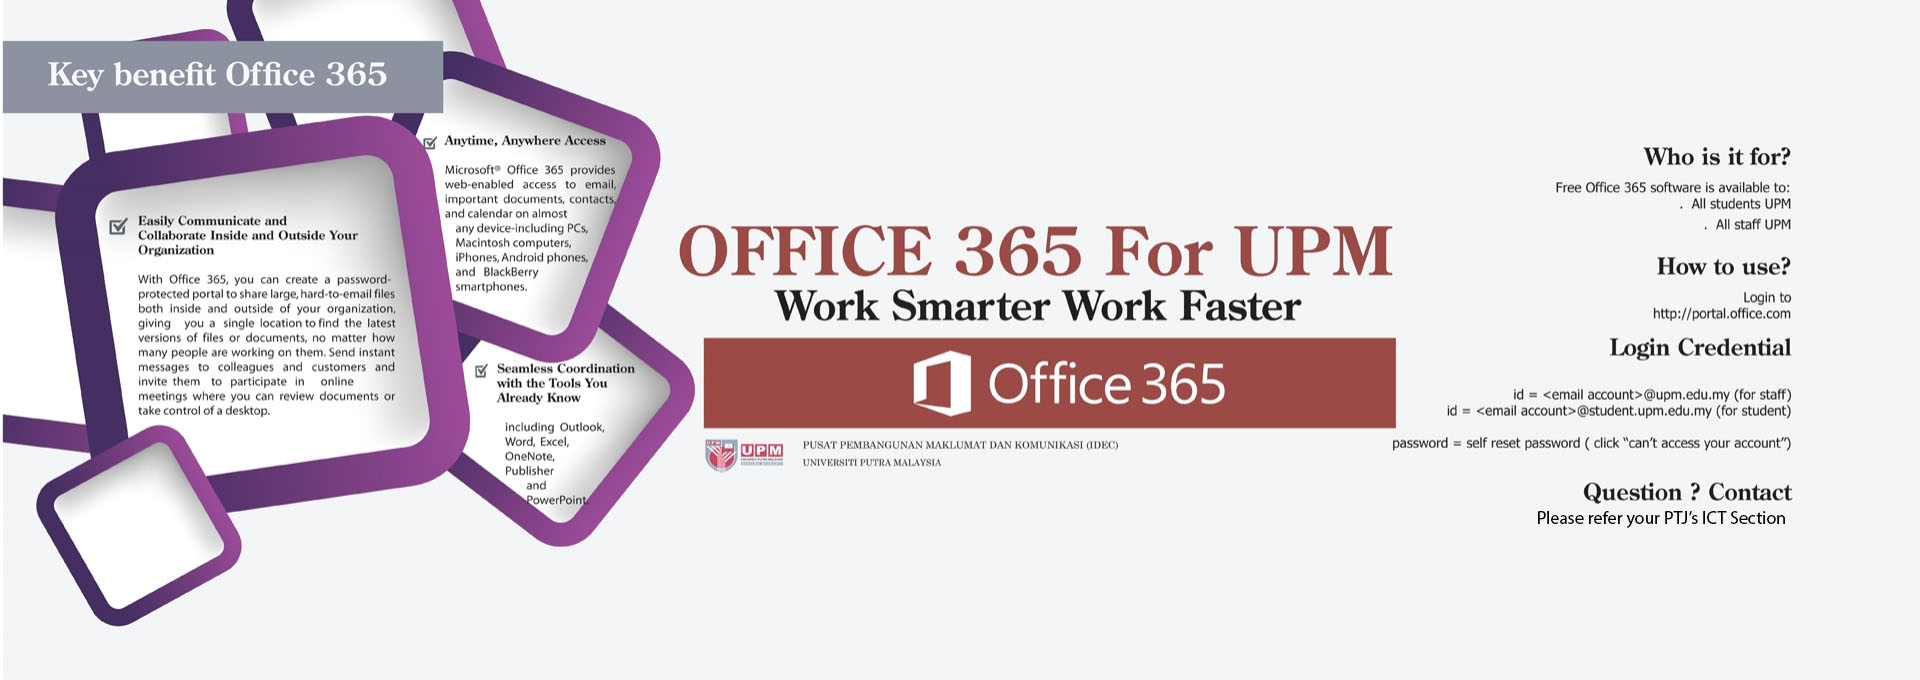 OFFICE 365 For UPM